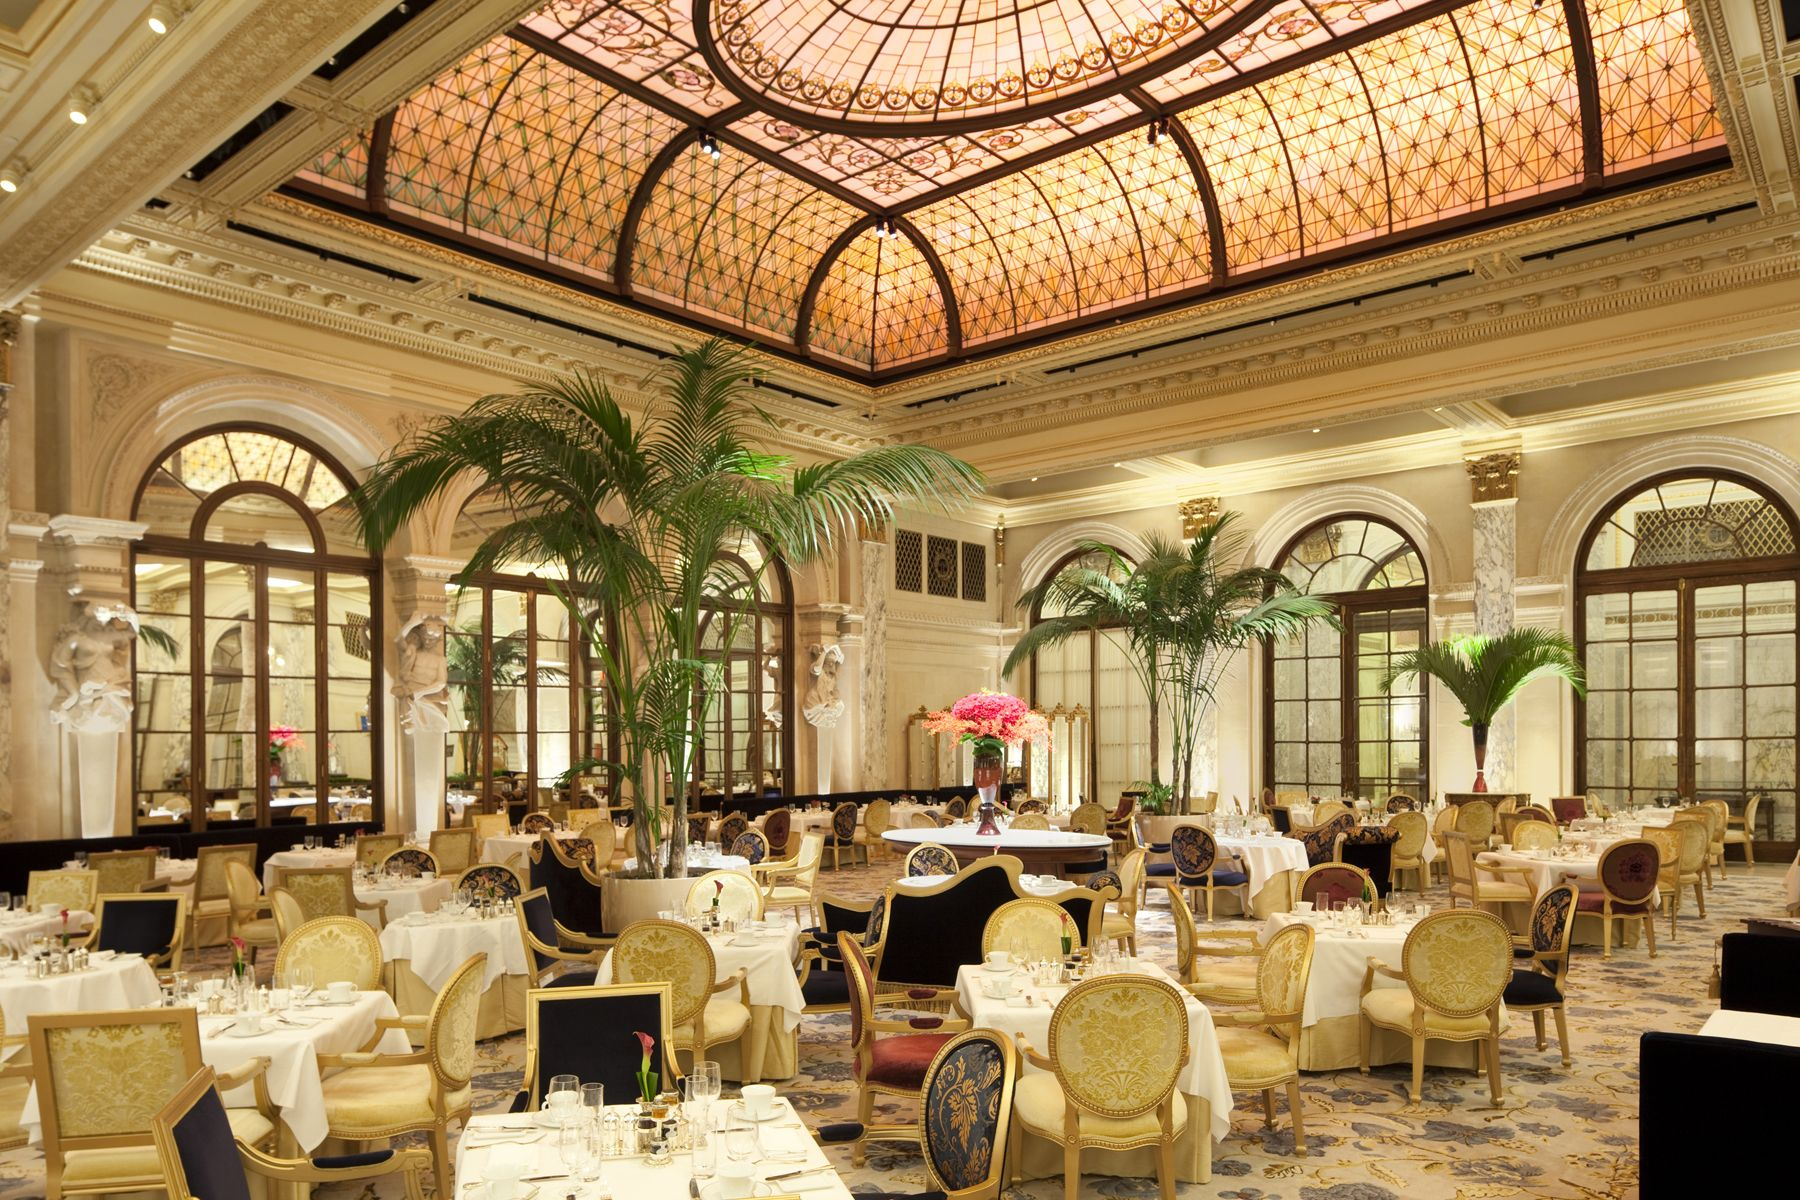 Have High Tea In The Palm Court @ The Plaza.